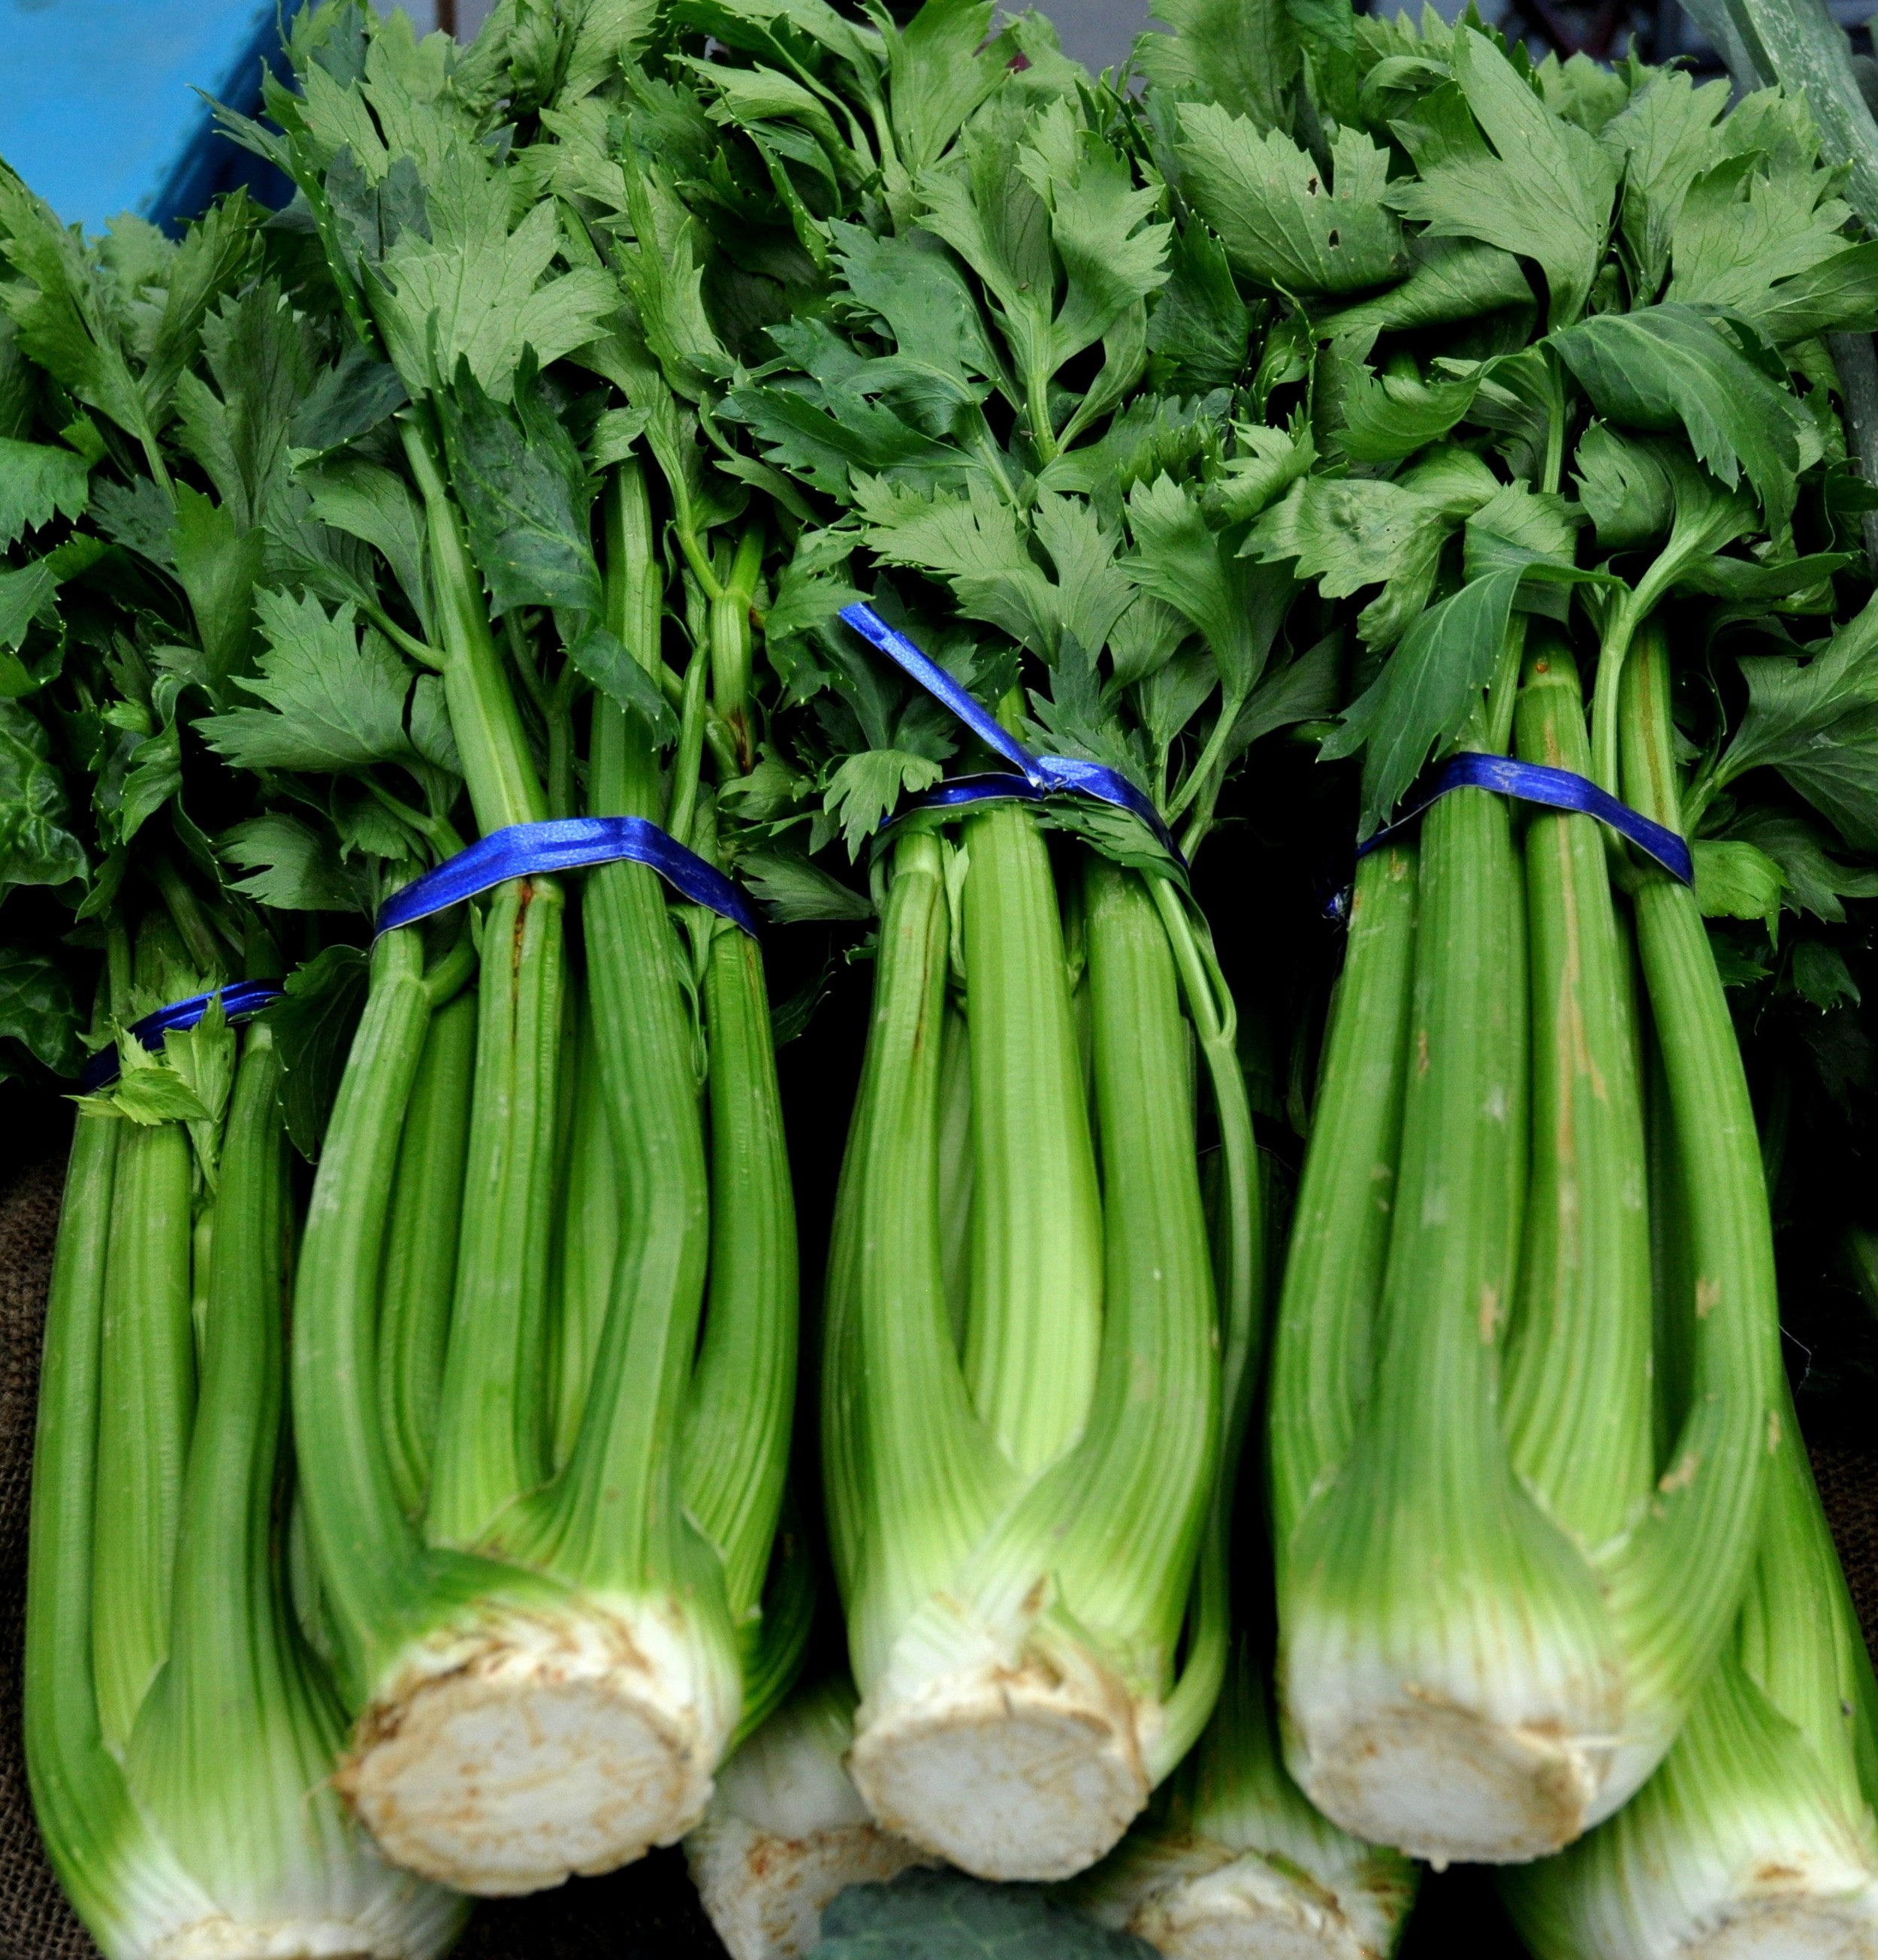 Celery from One Leaf Farm at Wallingford Farmers Market. Copyright Zachary D. Lyons.